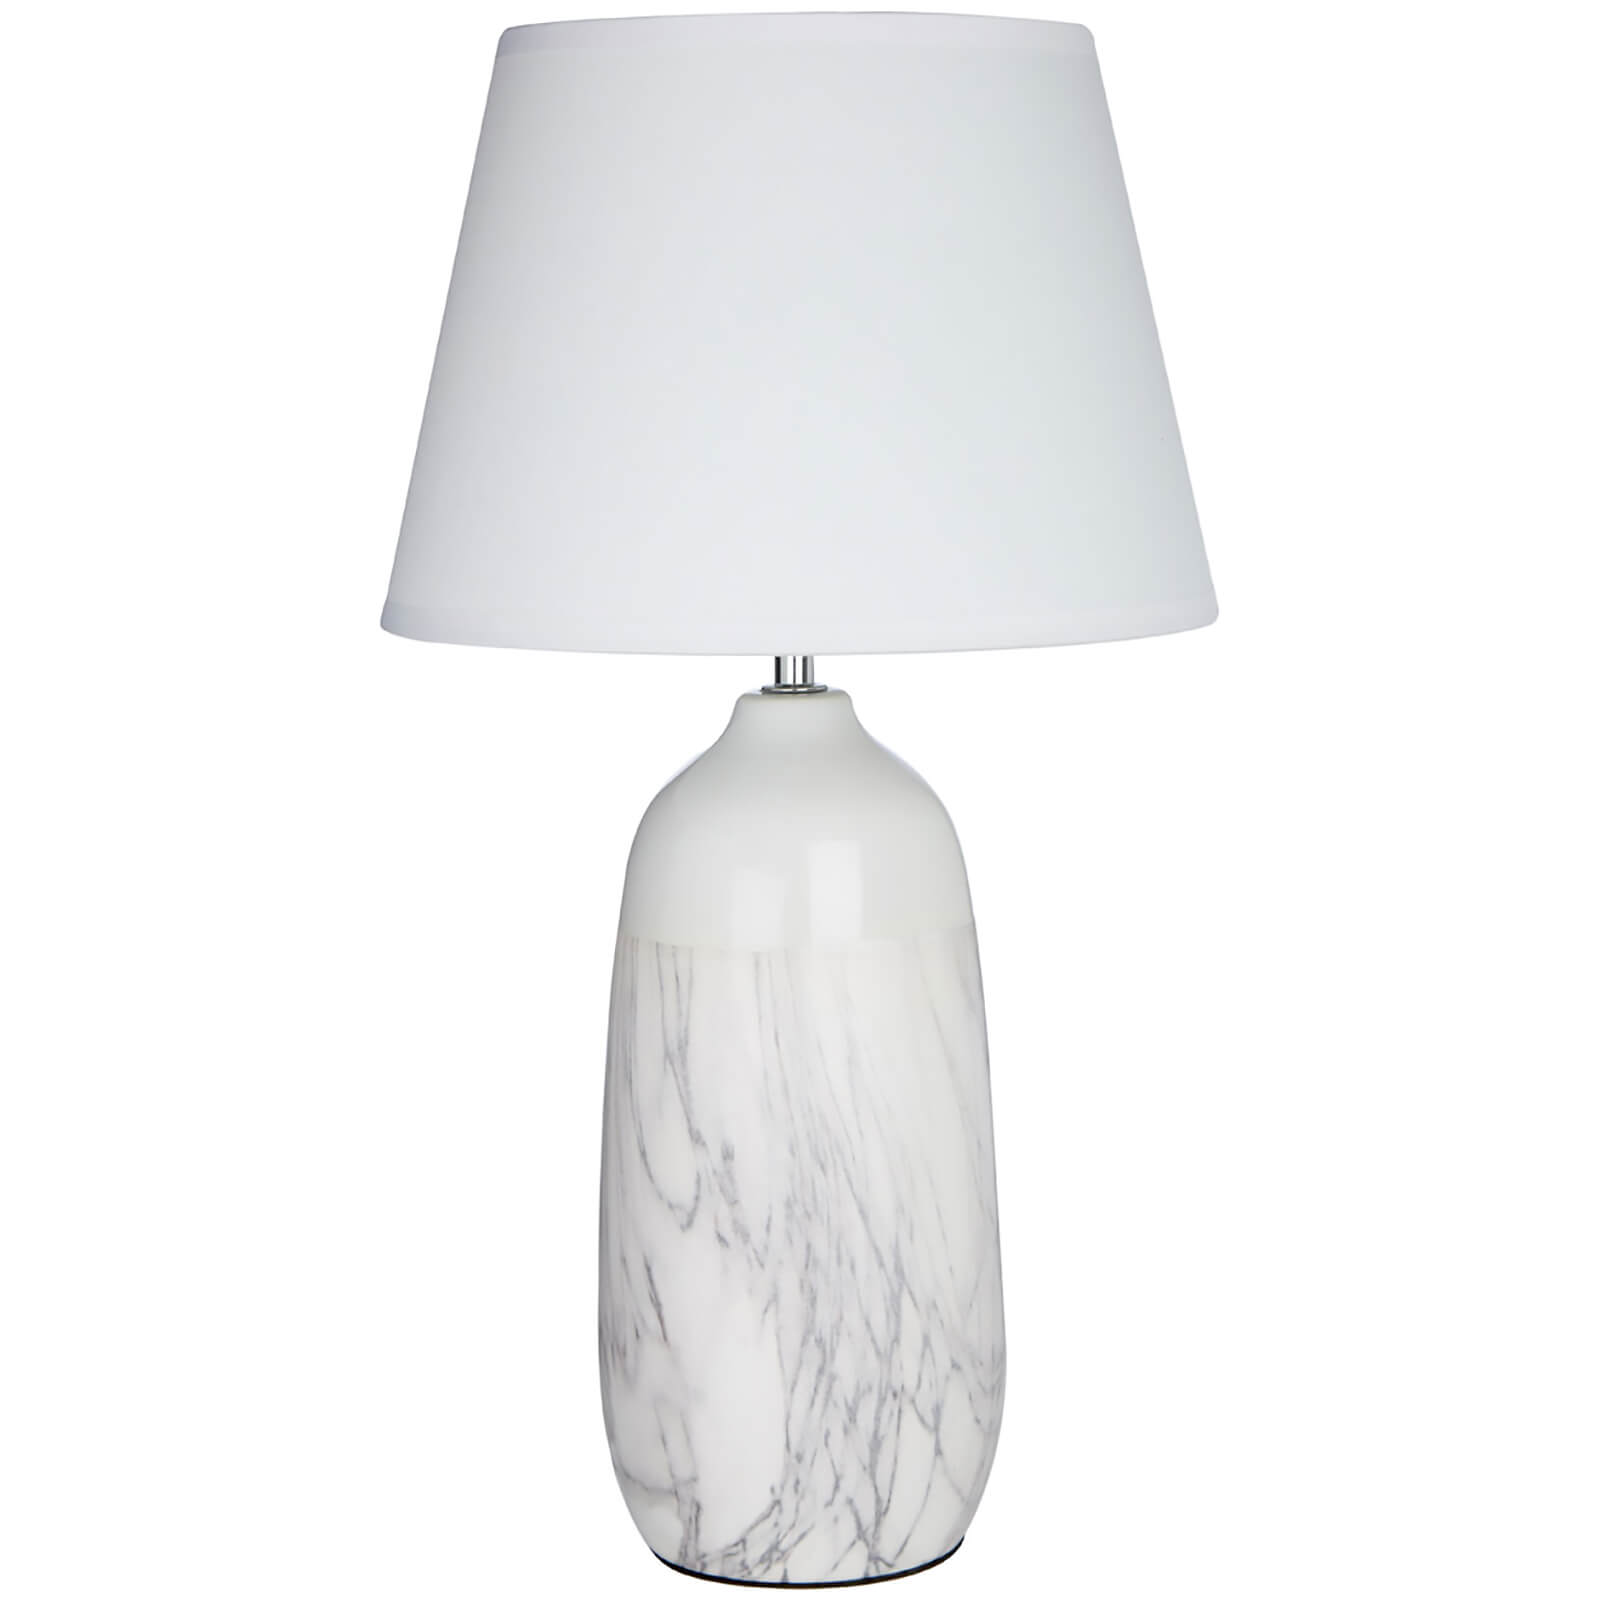 Fifty Five South Welma Table Lamp - White